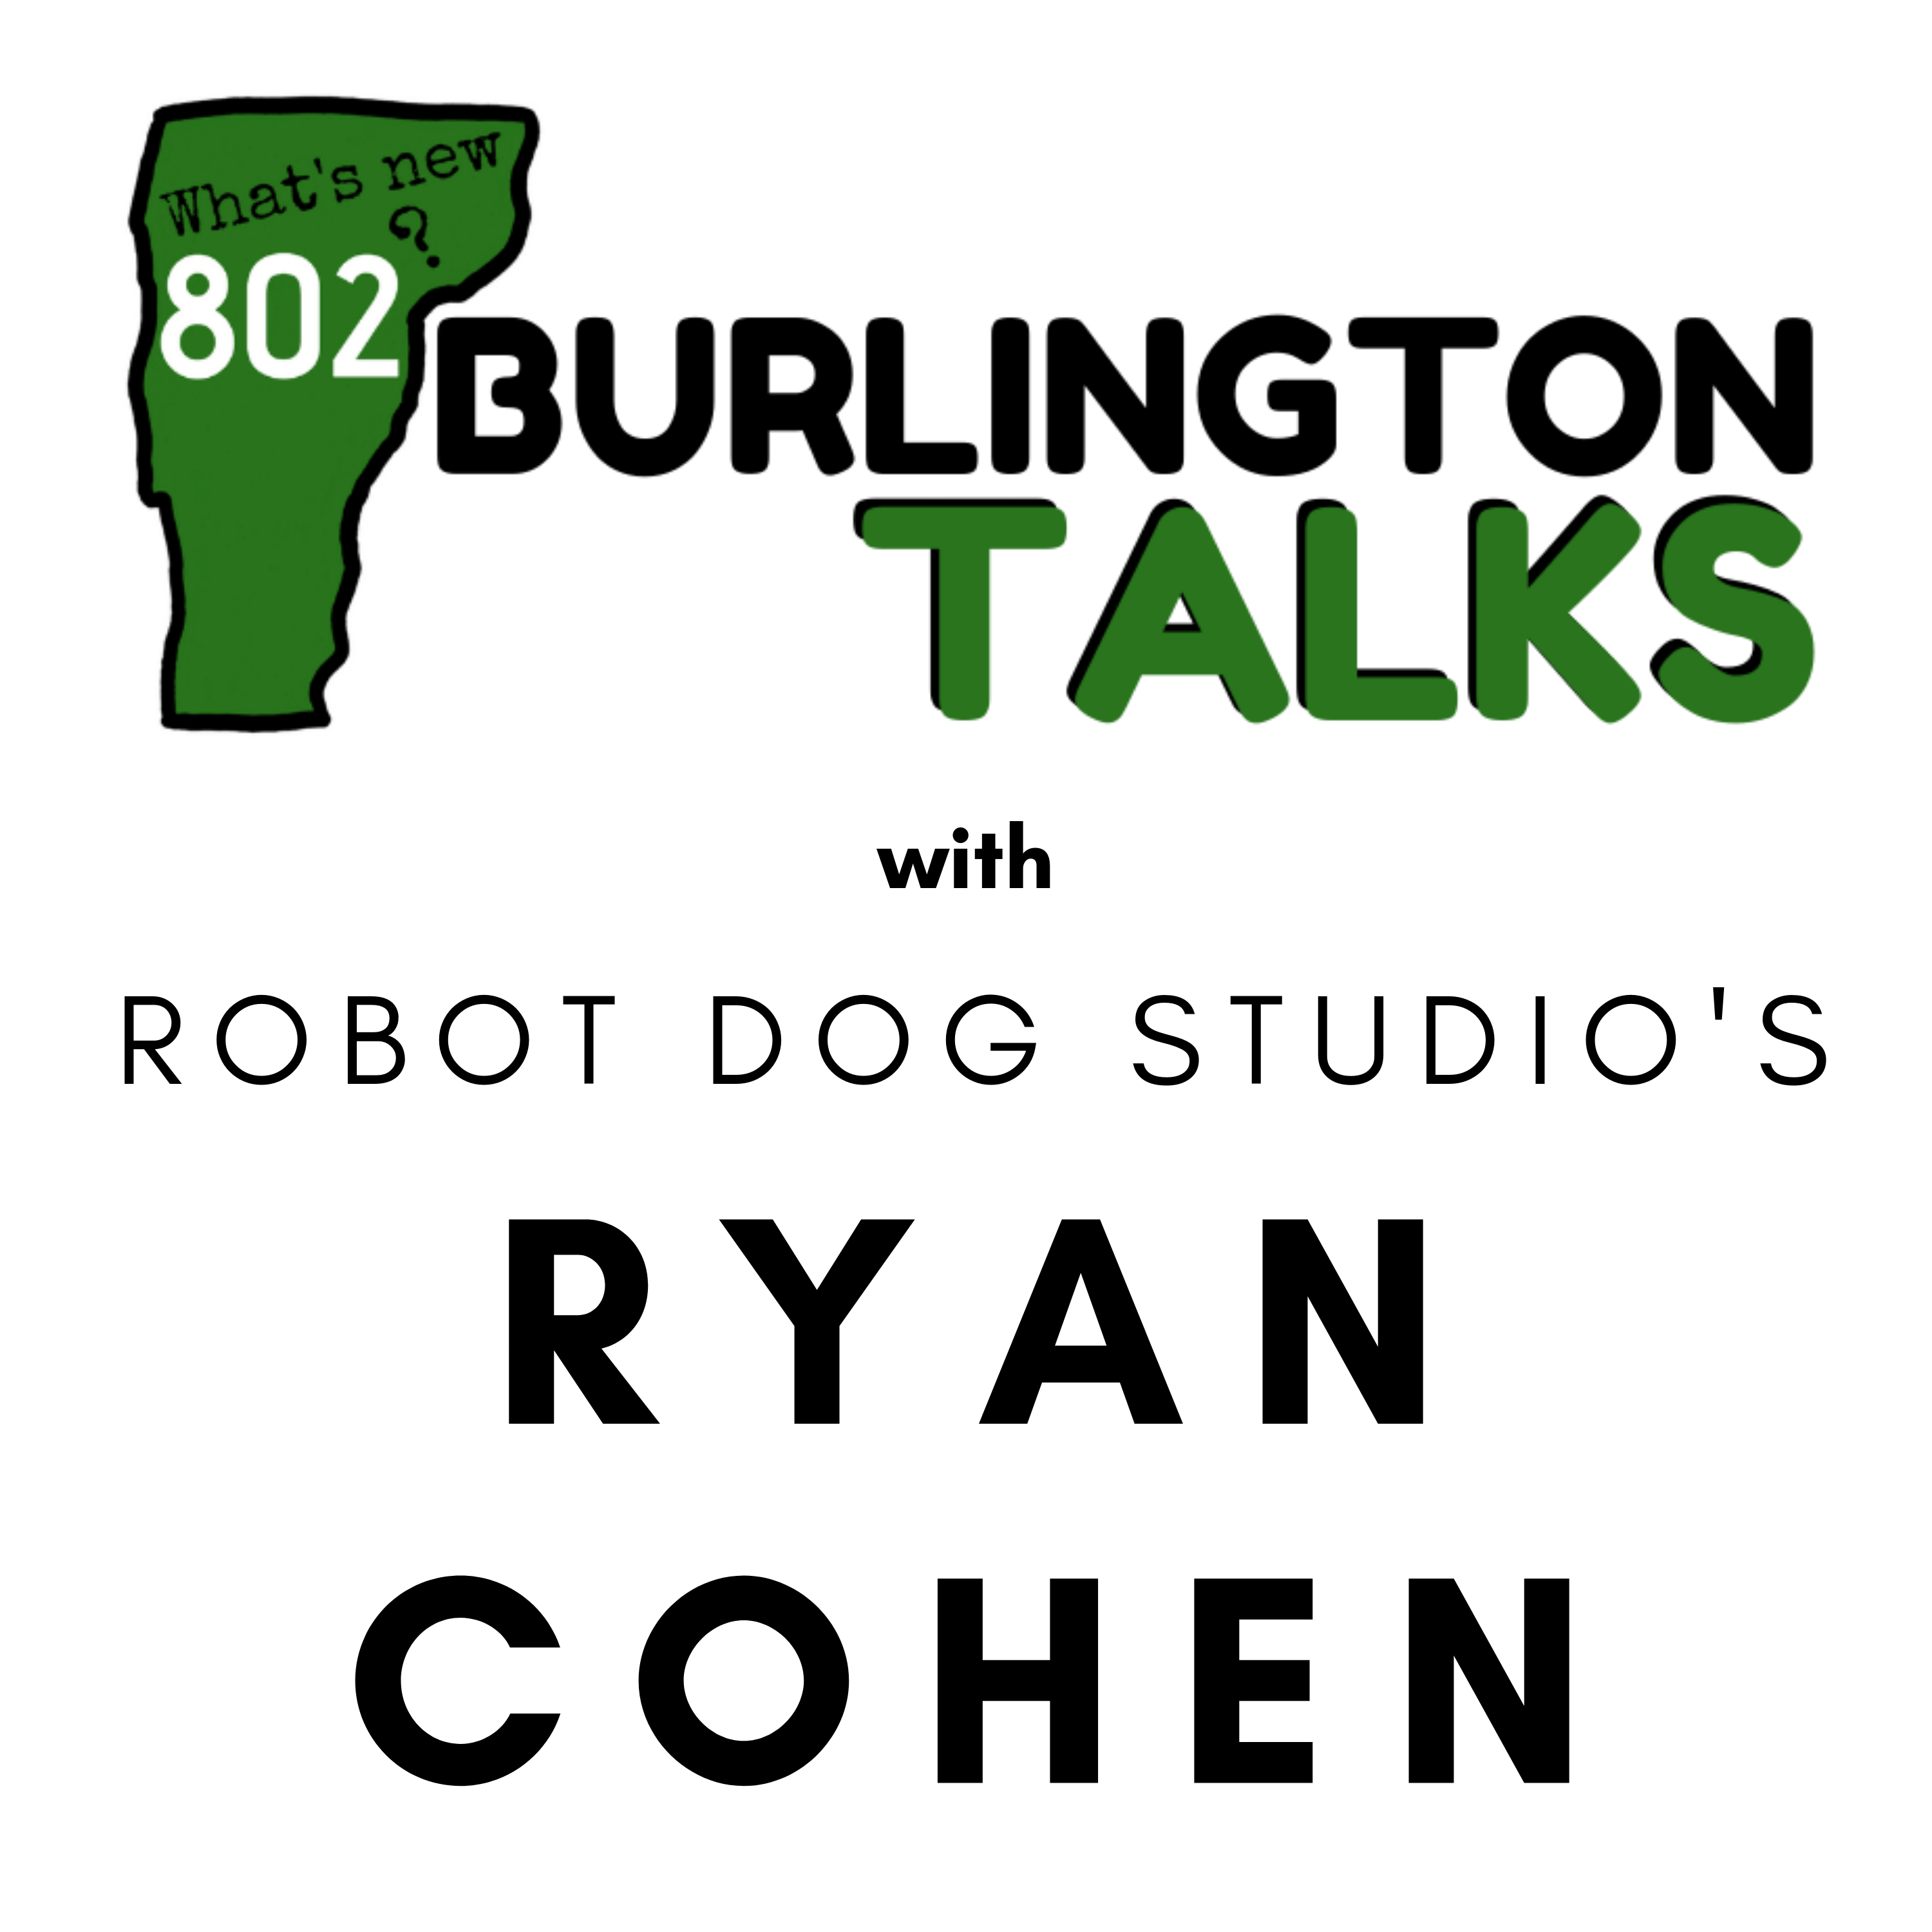 Talking with Ryan Cohen of Robot Dog Studio